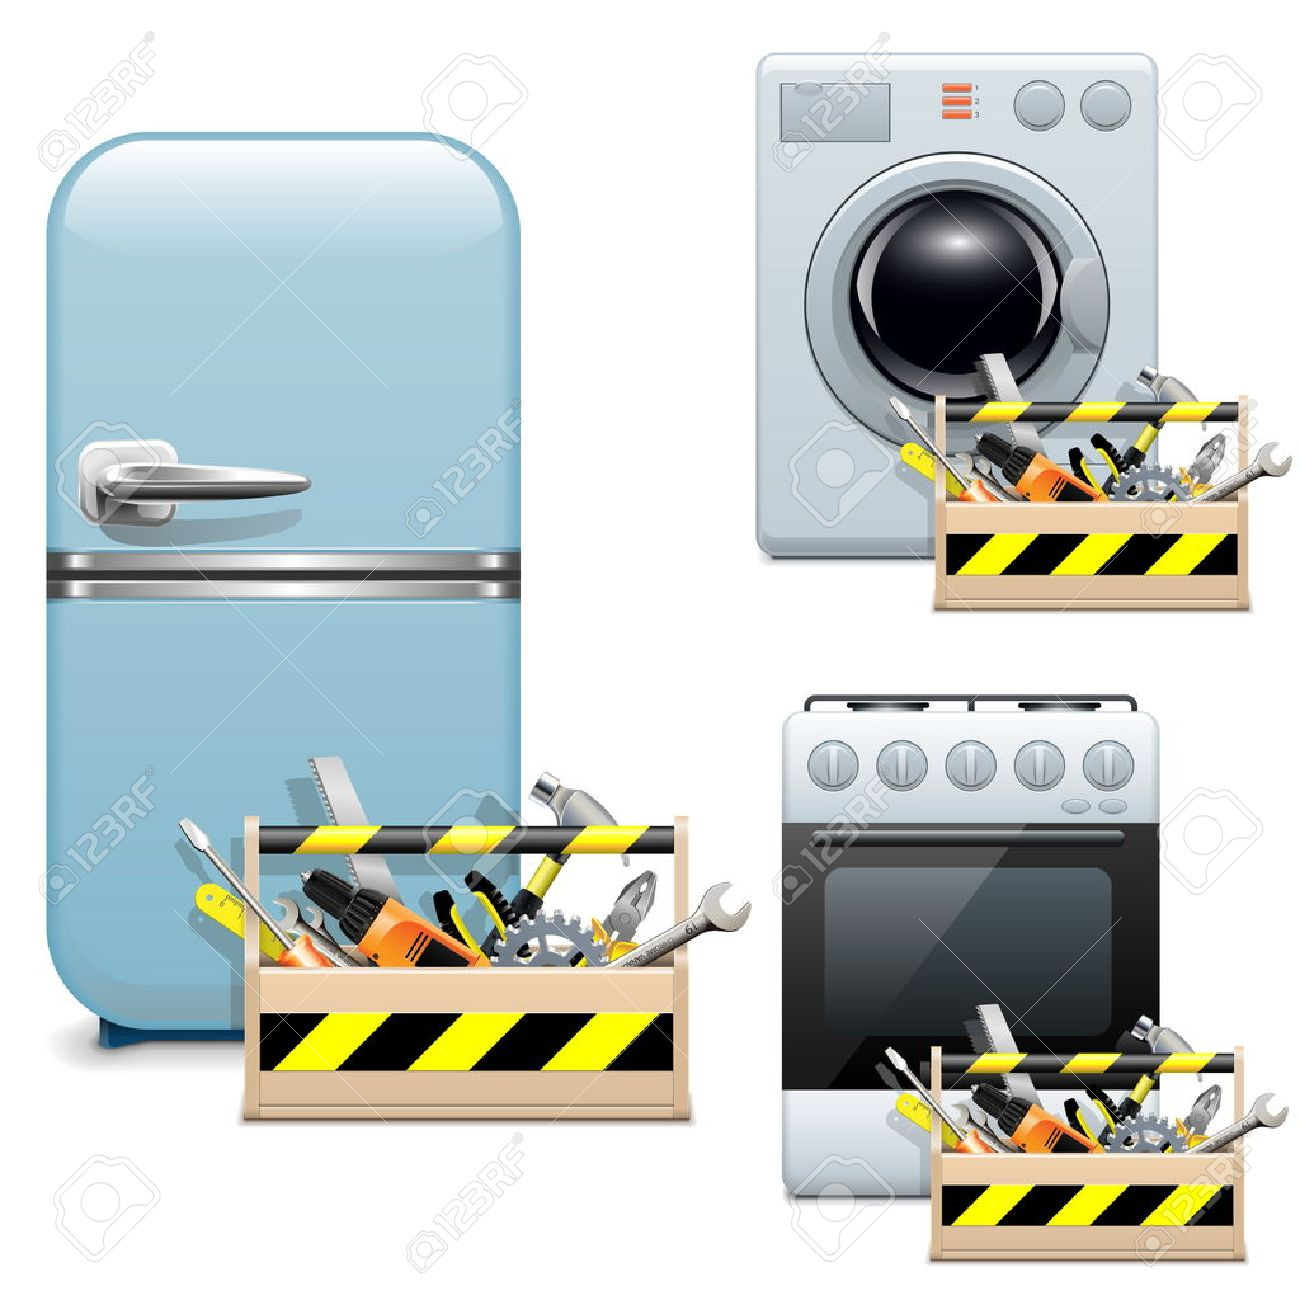 General Appliance Repair Vector Household Appliance Repair Icons Royalty Free Cliparts